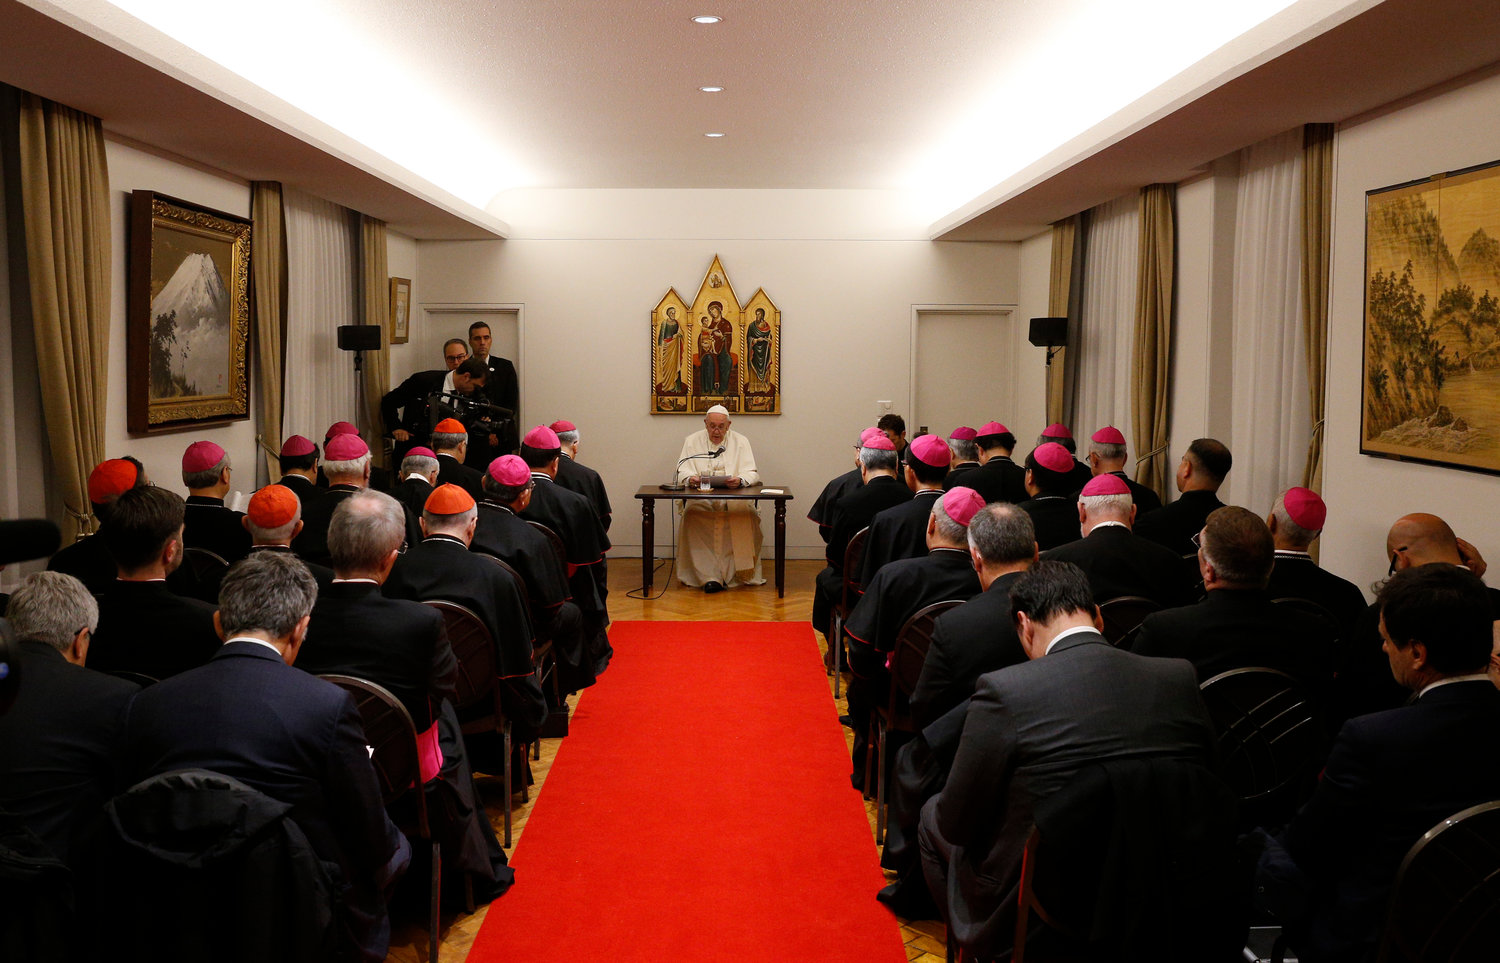 Pope Francis meets with the bishops of Japan at the apostolic nunciature in Tokyo Nov. 23.